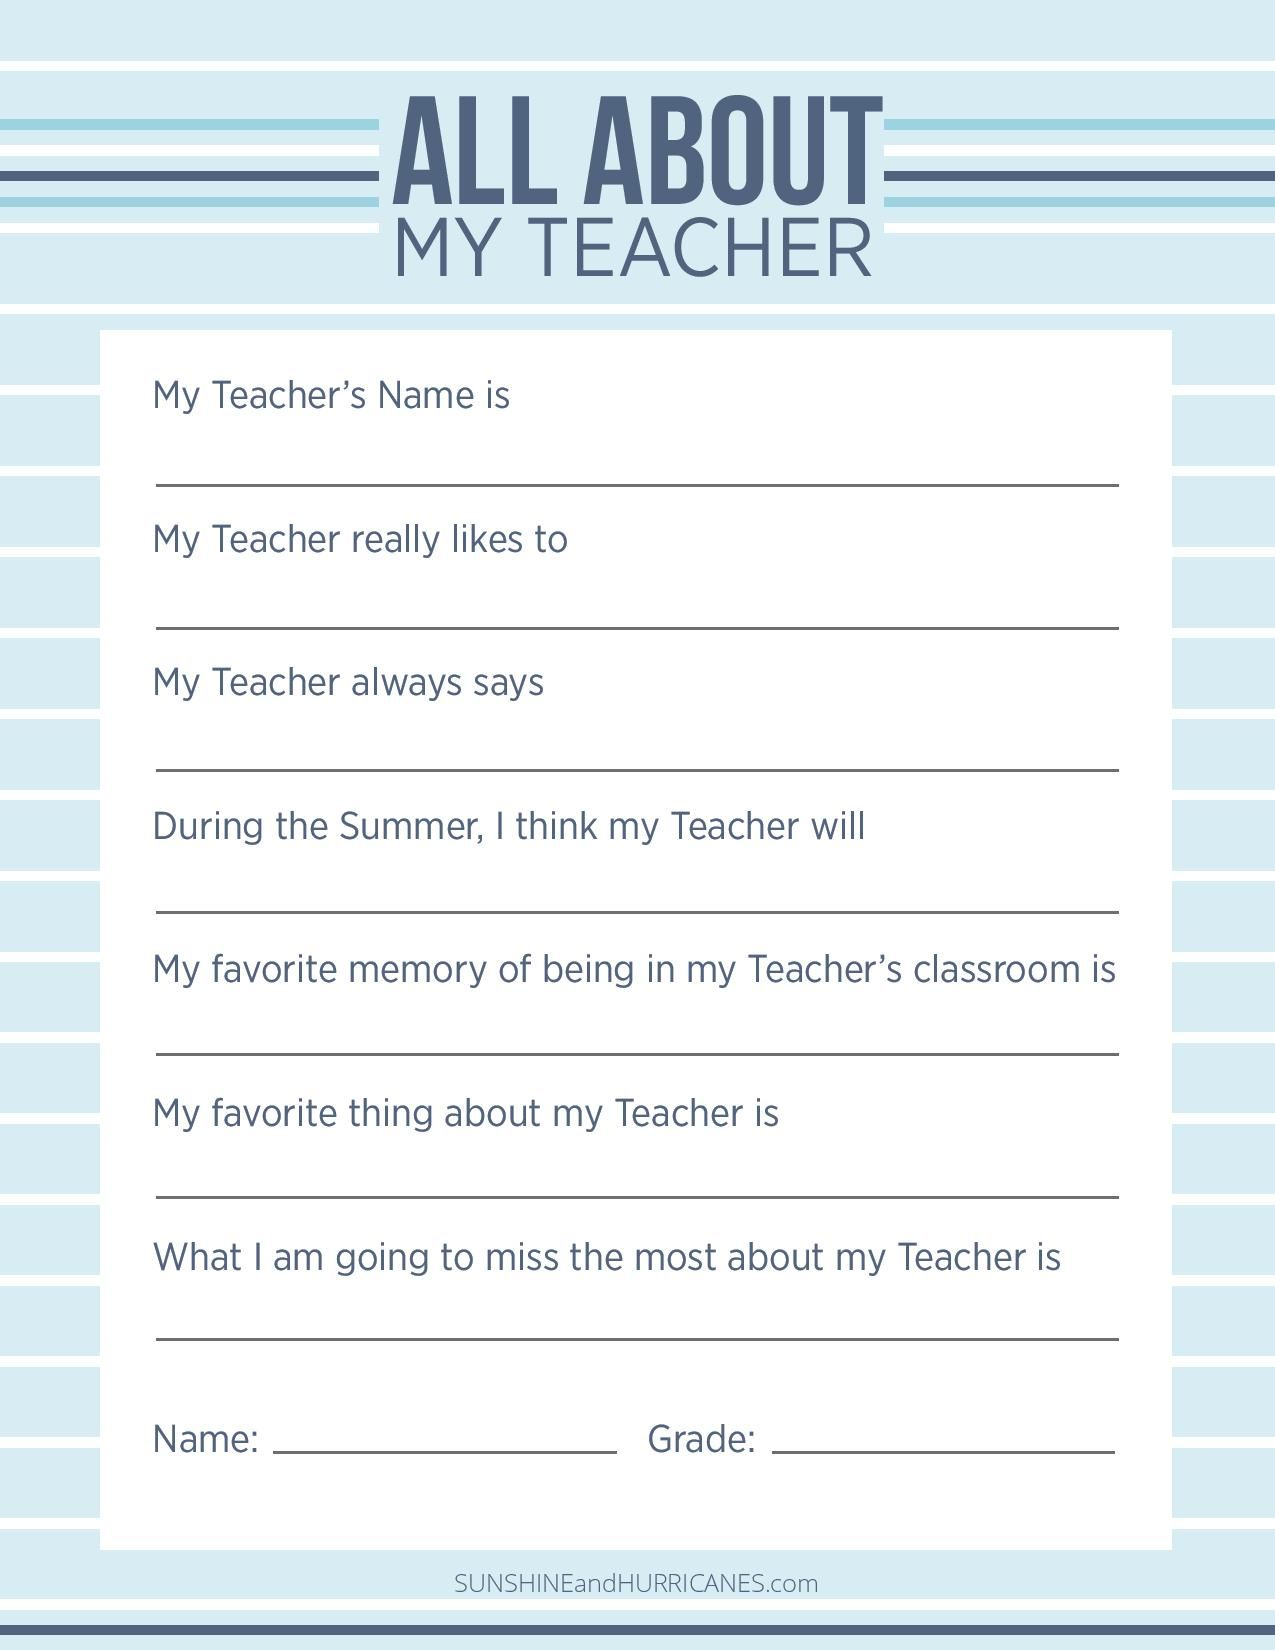 All About My Teacher Printable Questionnaire